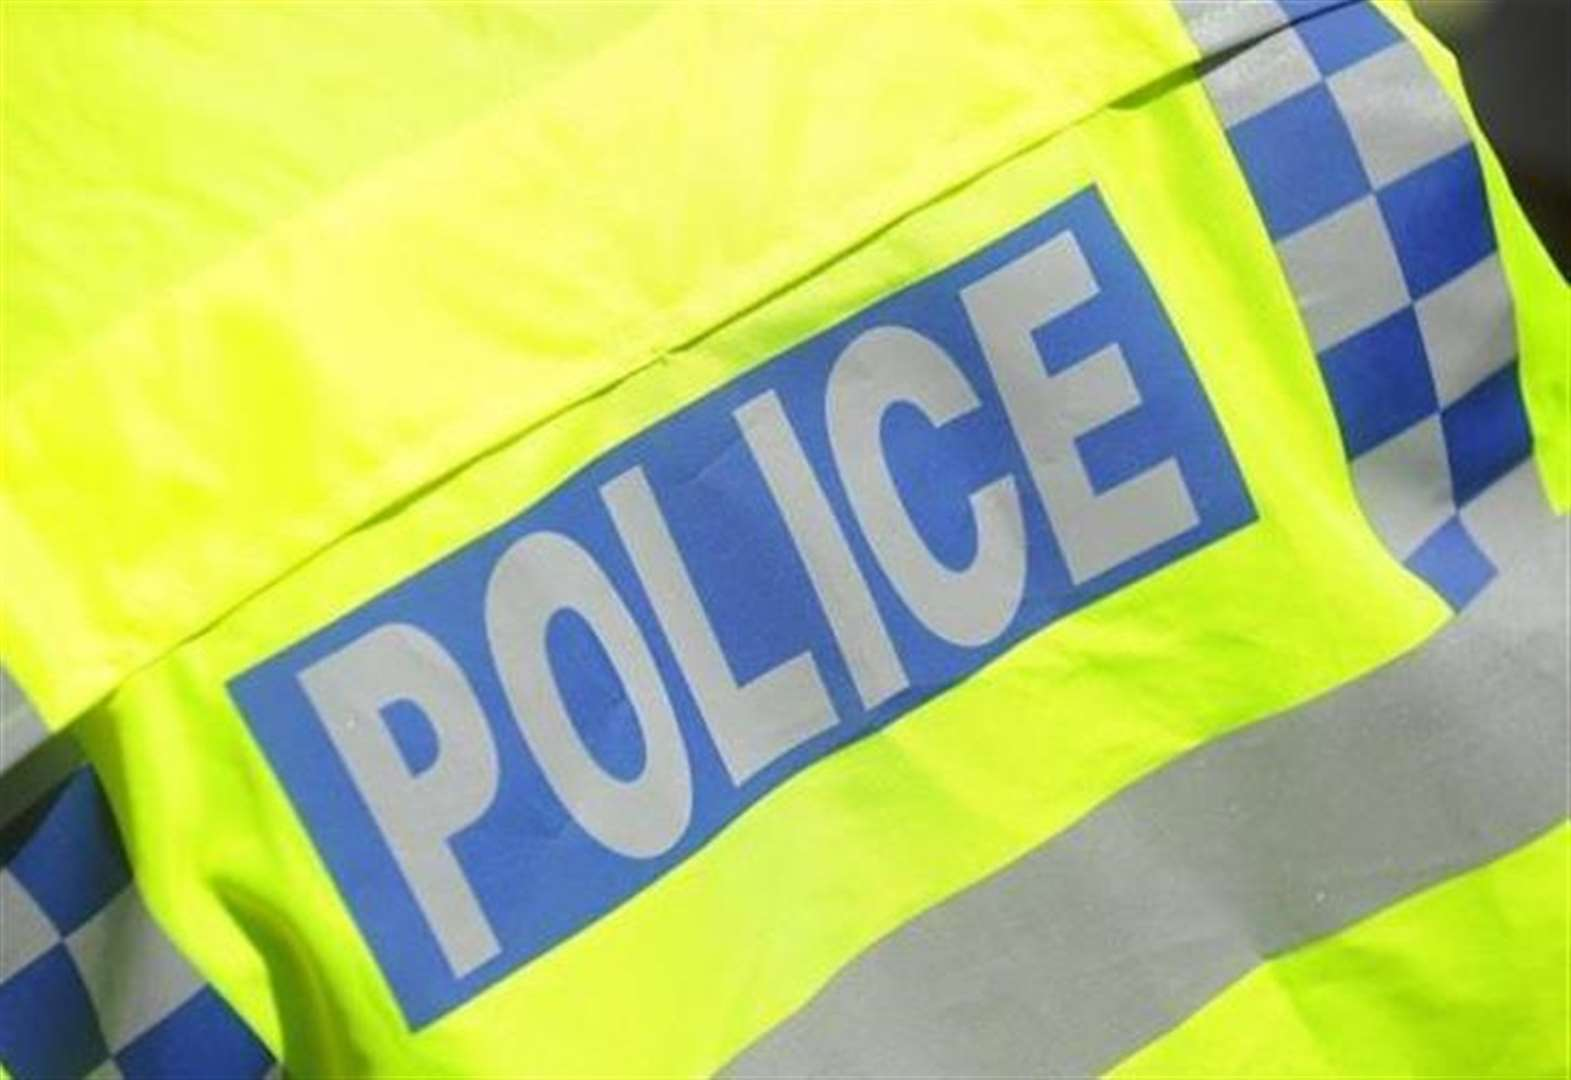 Police on scene of A1 crash near Grantham